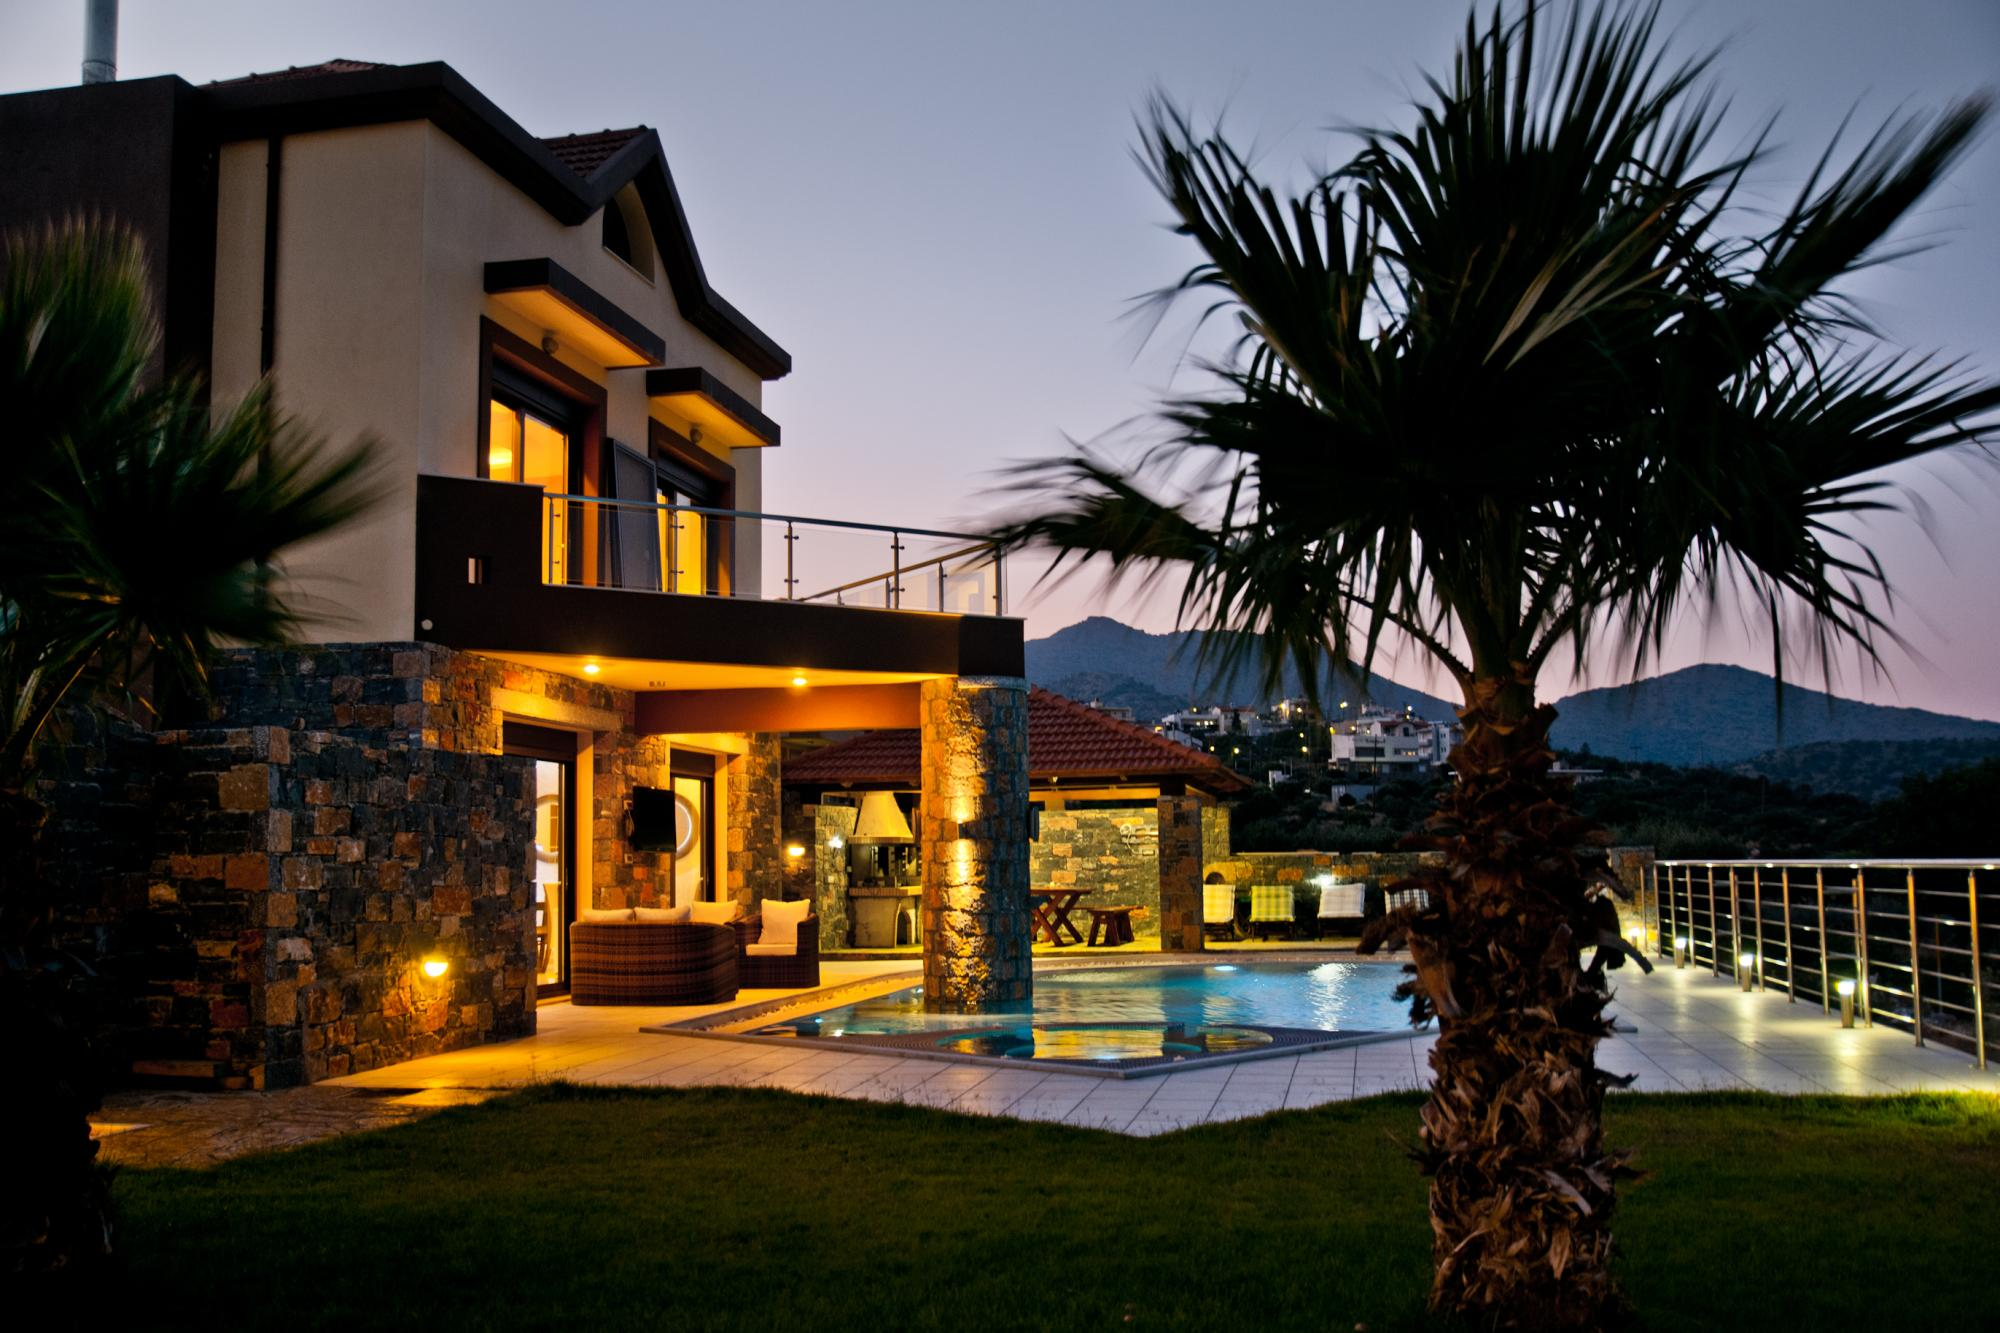 Luxurious villa with swimming pool and great sea views on outskirts of cosmopolitan town.